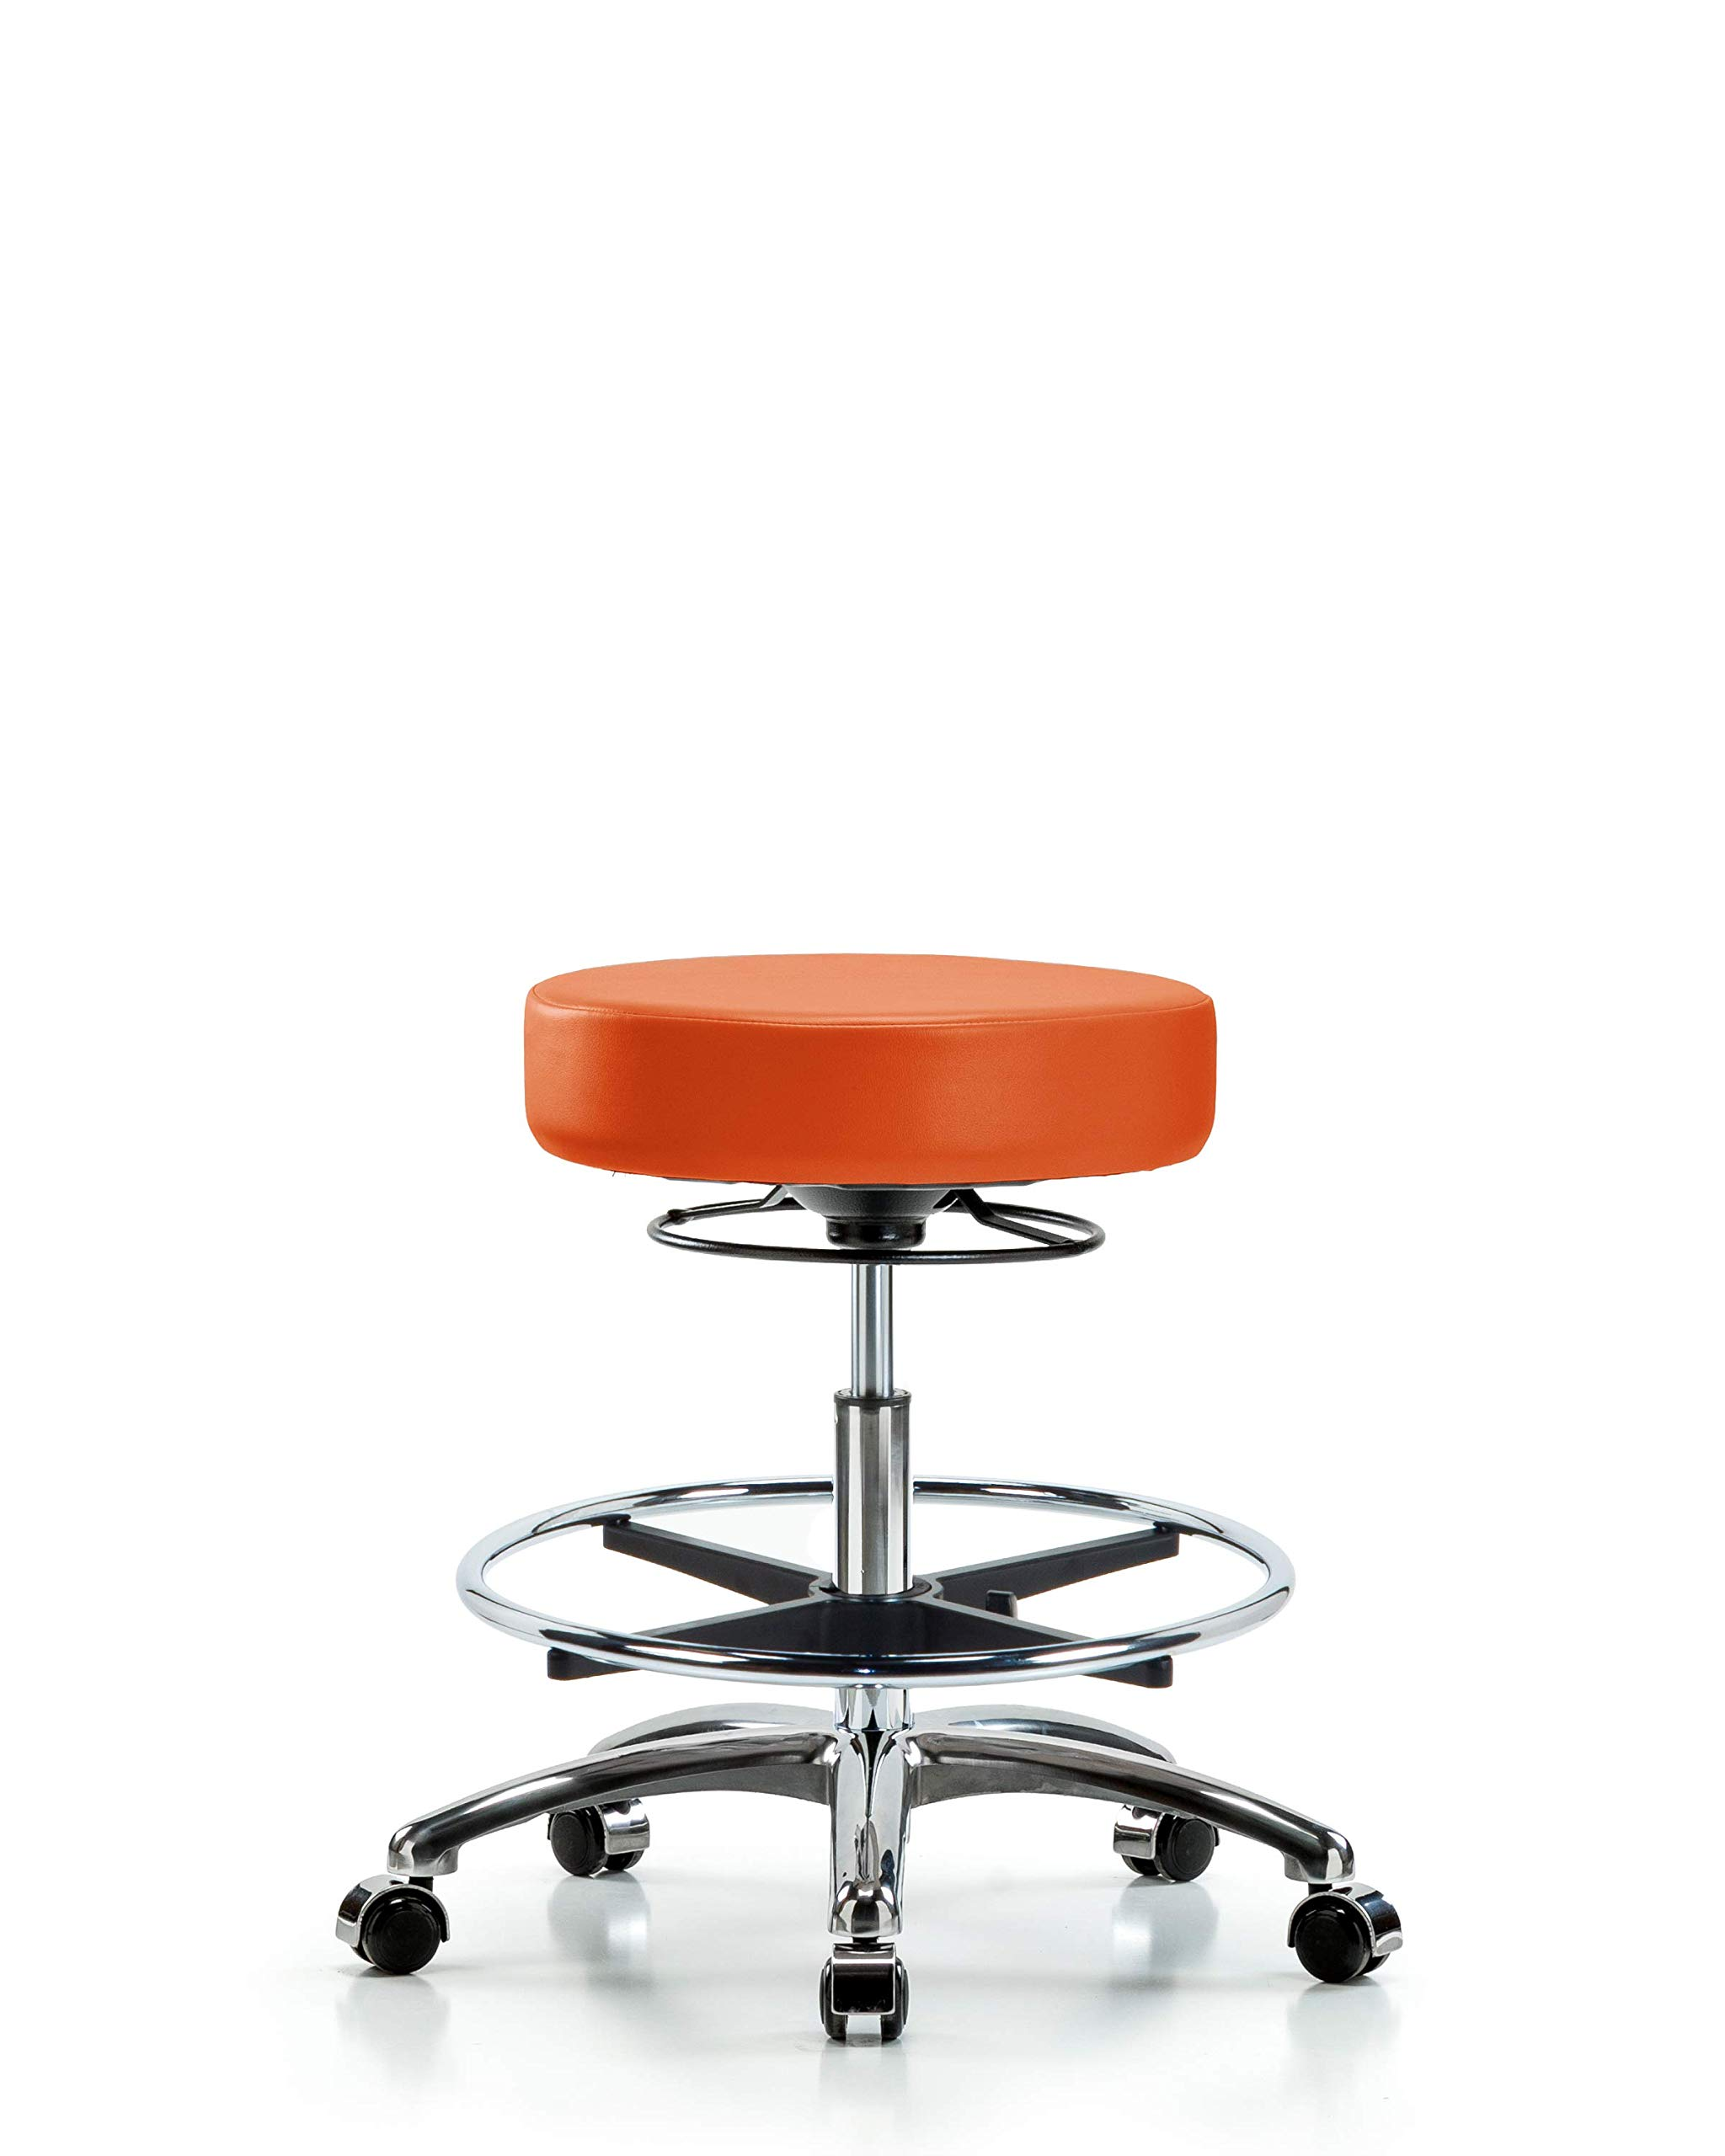 Adjustable Stool for Exam Rooms, Labs, and Dentists with Wheels - Chrome, Bench Height, Orange by LabTech Seating